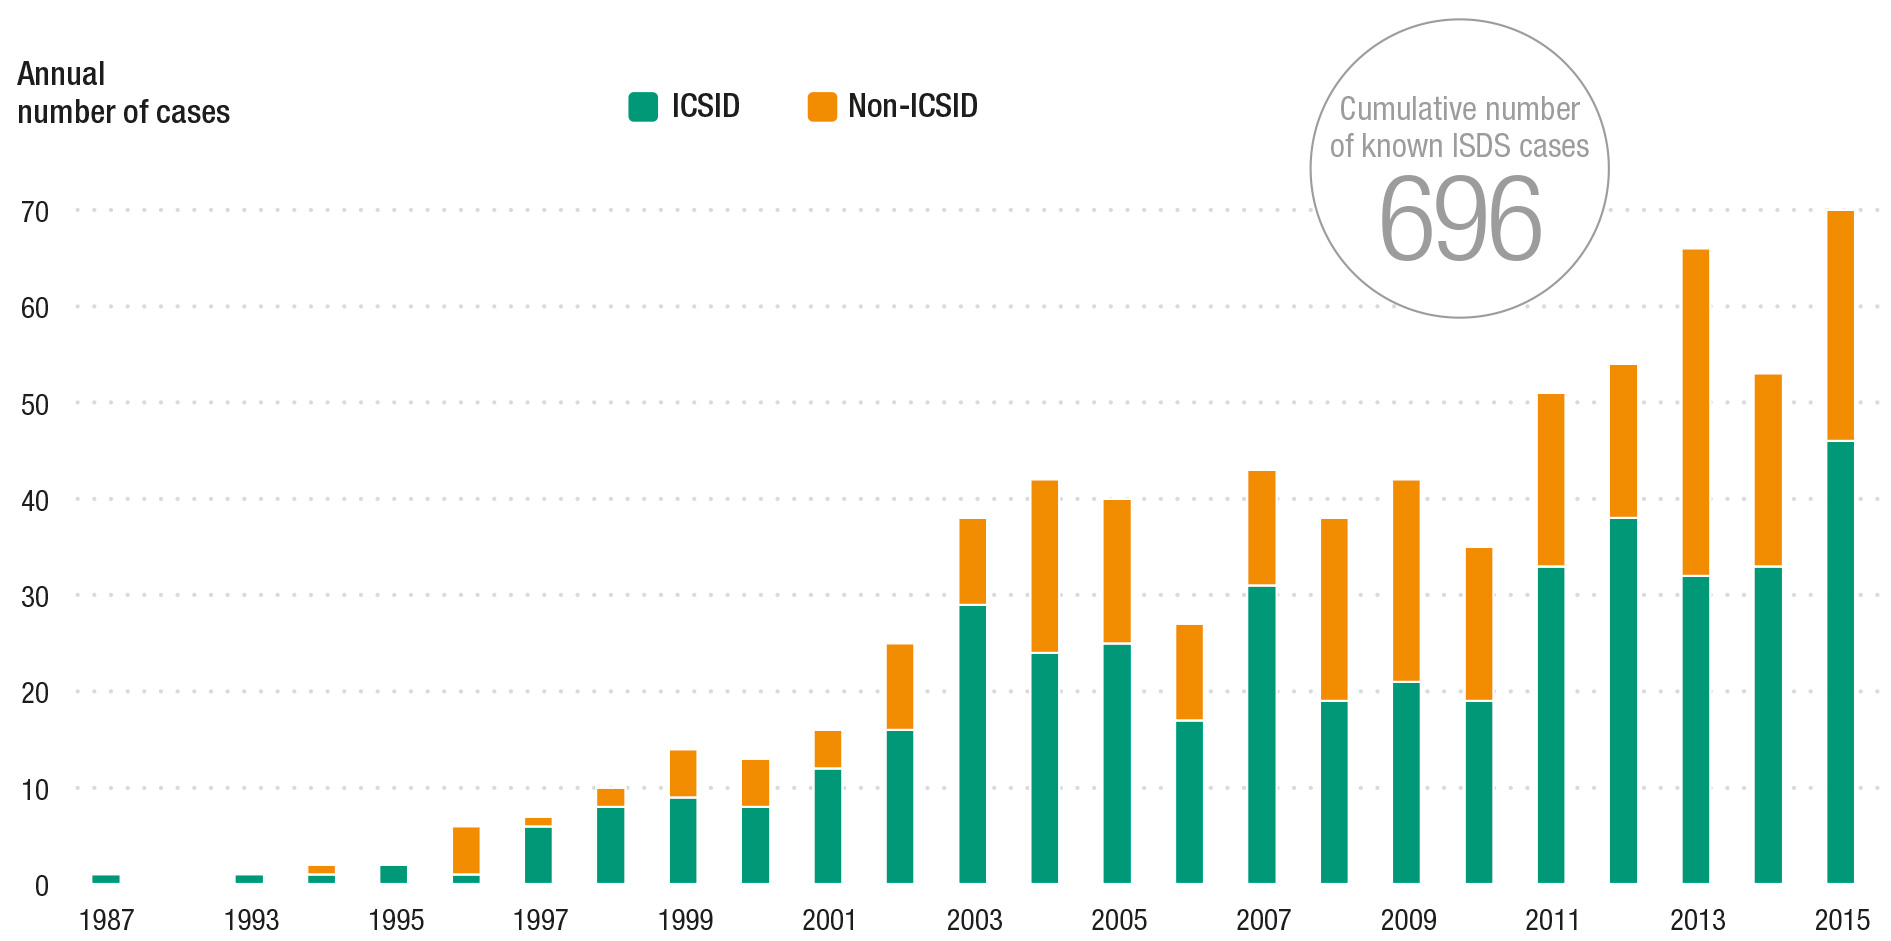 While investment agreements have become less popular in recent years, those negotiated still tend to include ISDS provisions and the number of ISDS dispute cases has never been higher. In 1997, the same year NAFTA was signed, ICSID cases came on the scene in a big way, doubling the previous ISDS annual average caseload of 0-5 cases up to nearly 10. Since then investors and lawyers haven't looked back, and 2015's record breaking 70 cases stands as new norm. Graphic by James Zhan, UNCTAD 2016WIR, courtesy of UNCTAD